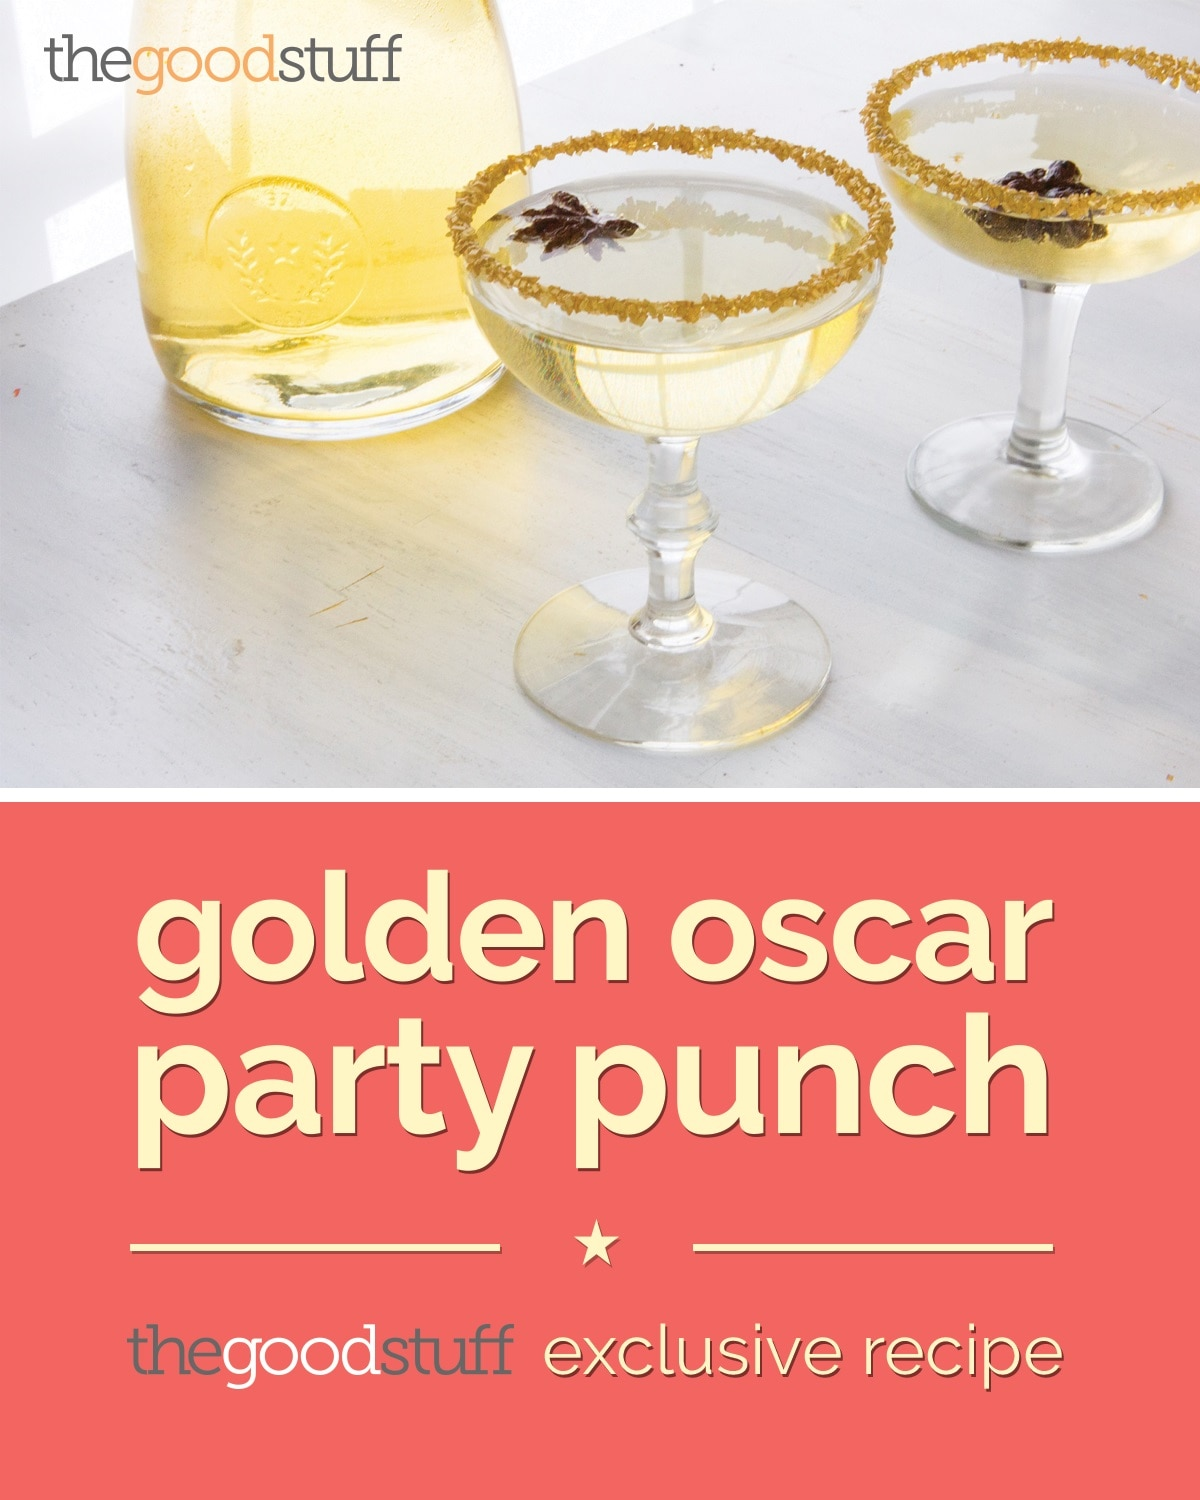 food-golden-oscar-party-punch